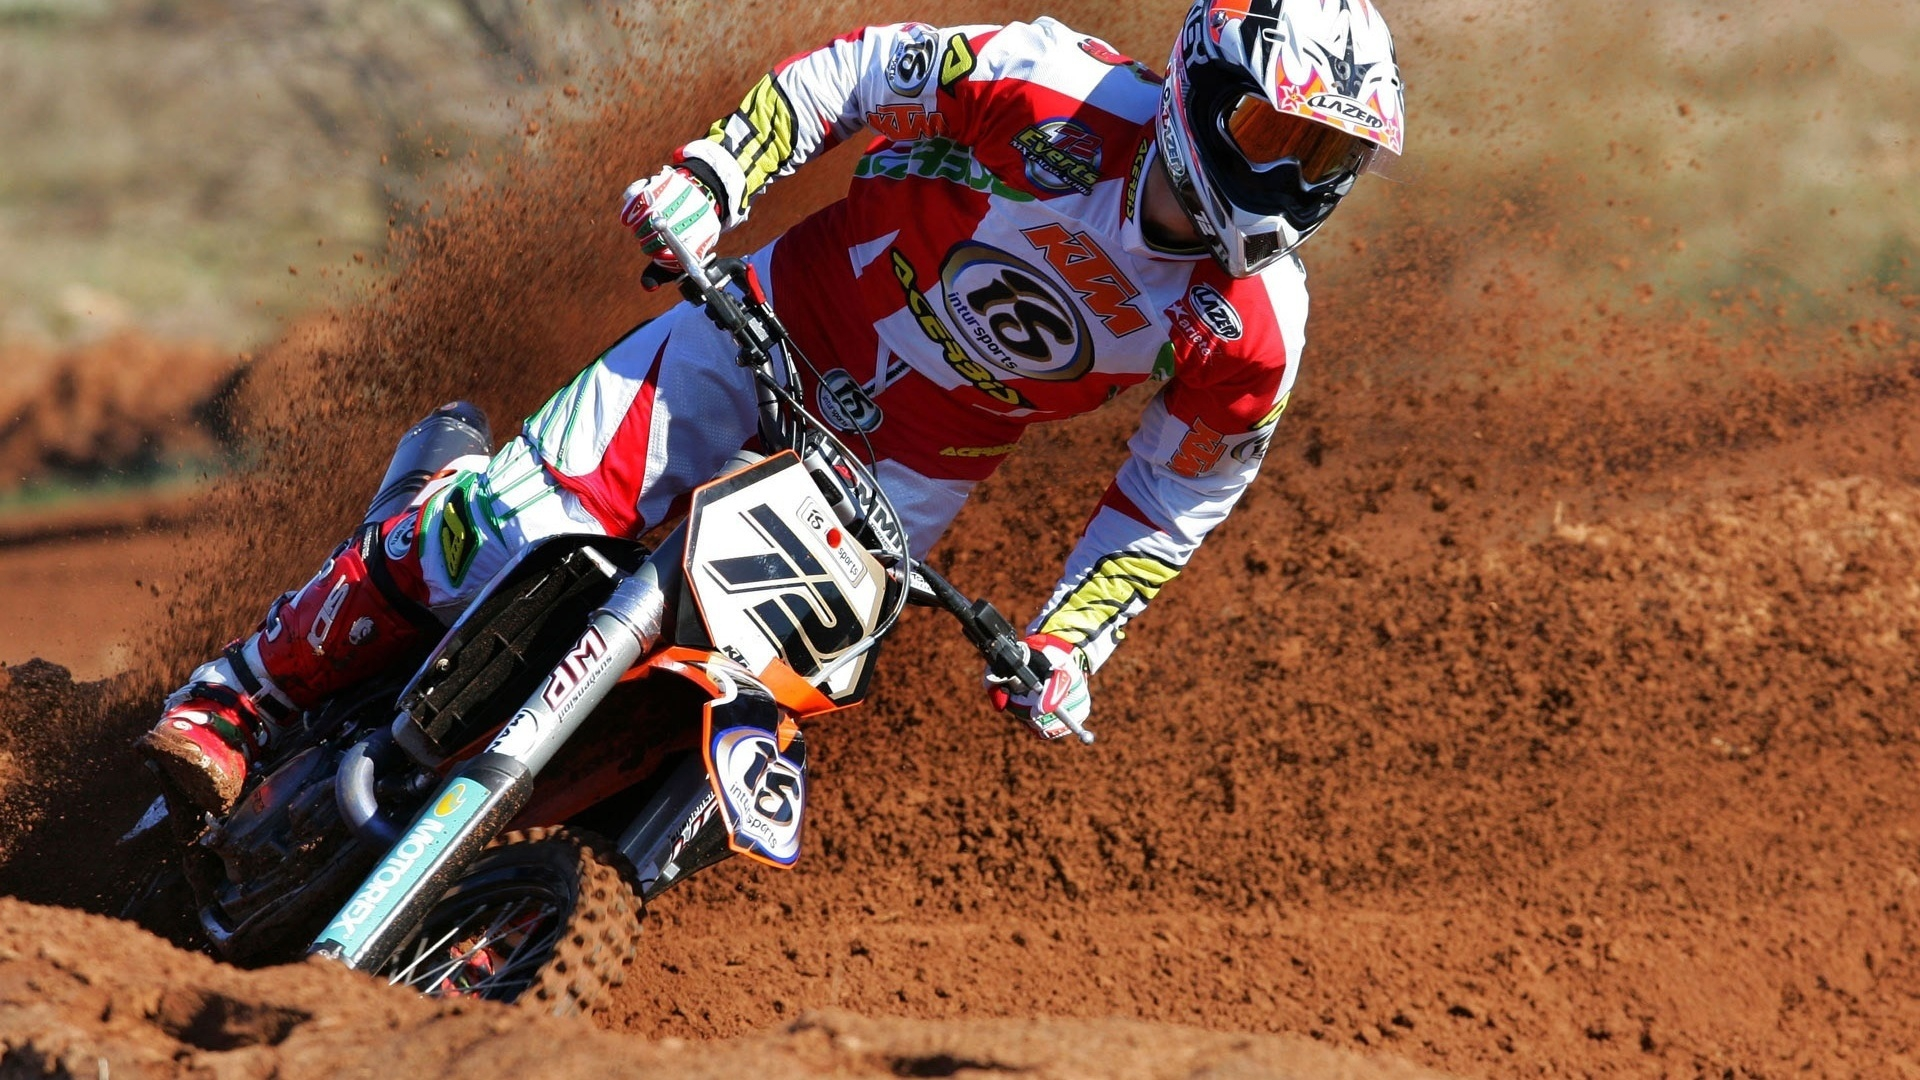 Download Motocross Ktm Wallpapers 1920x1080